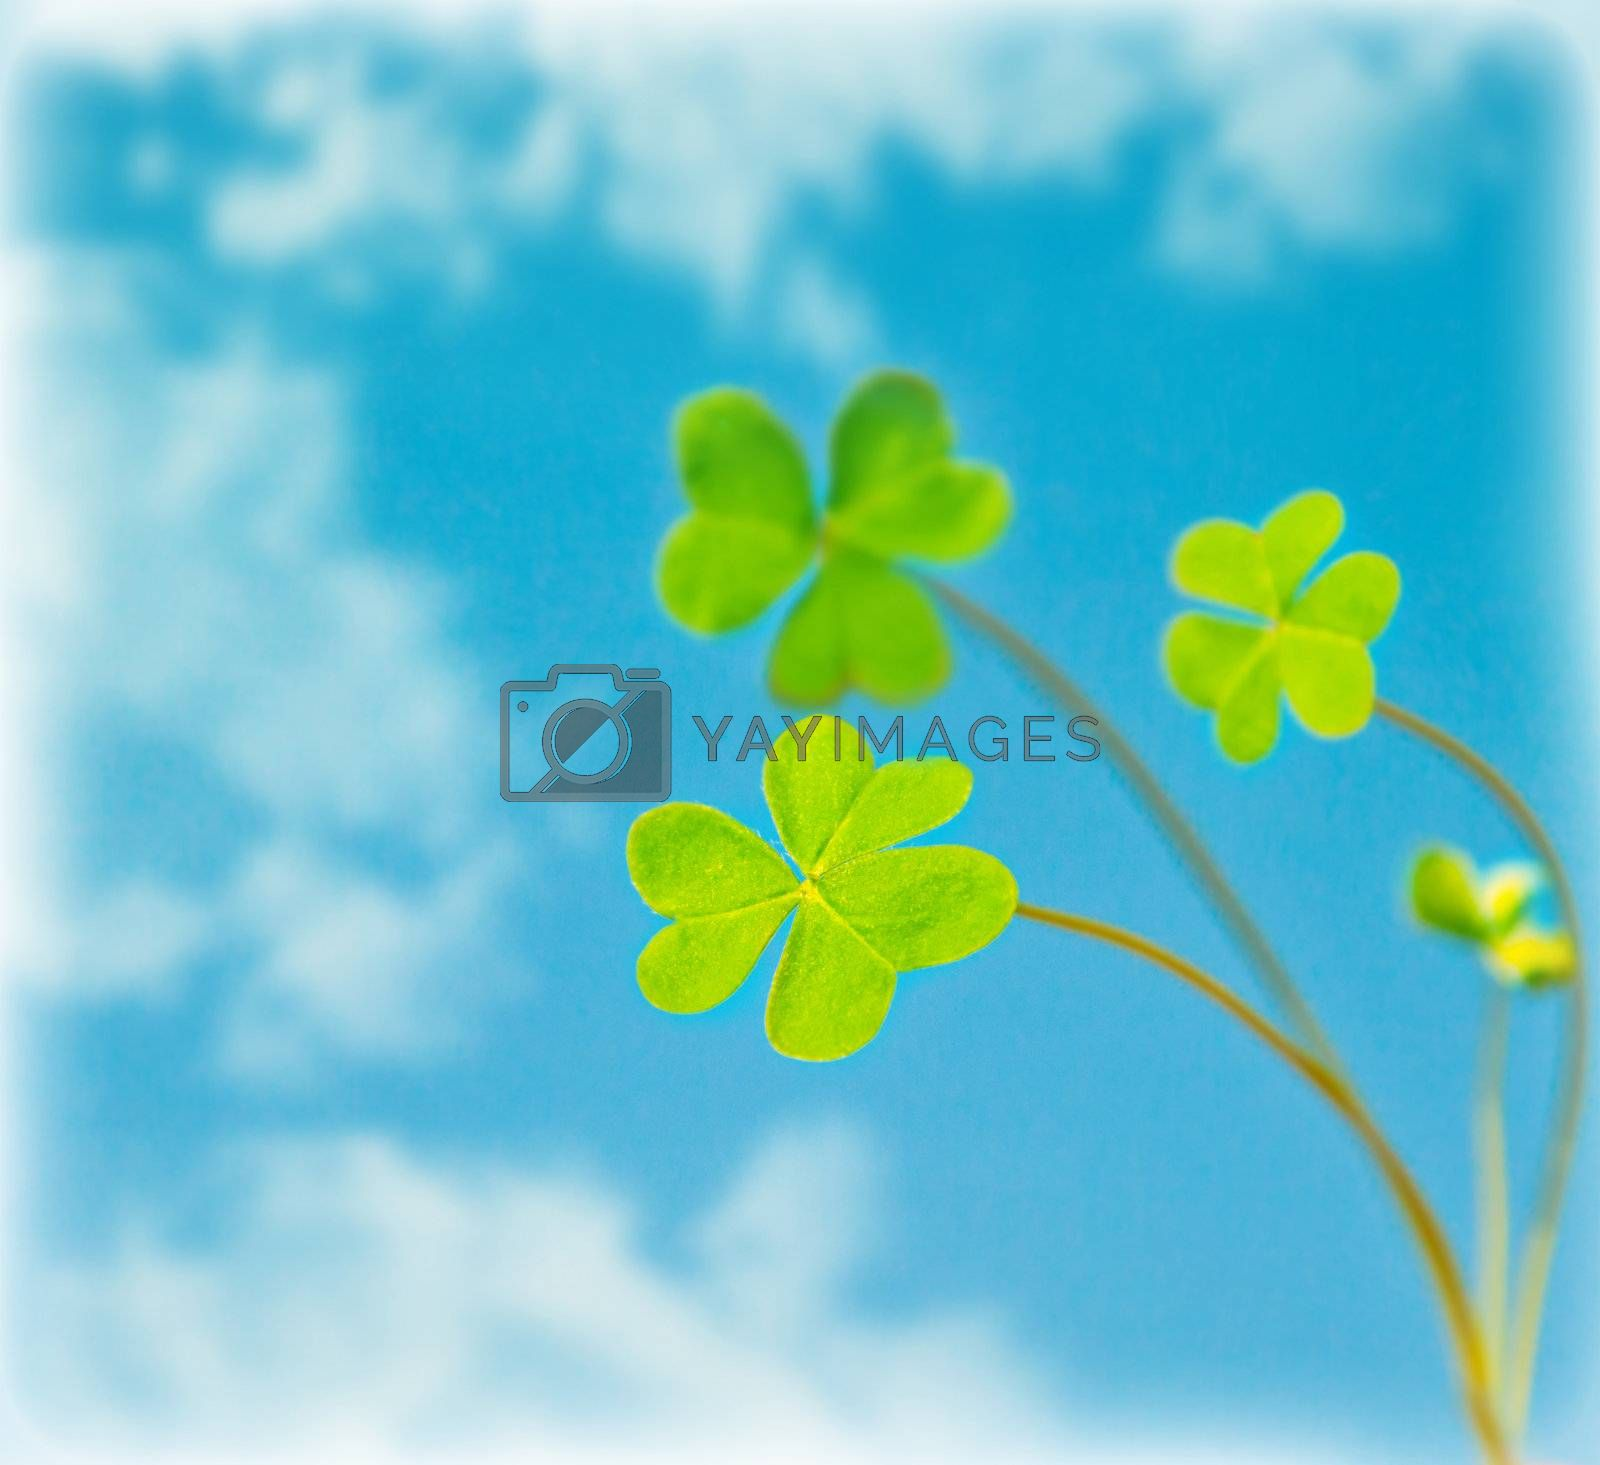 Abstract natural background, clover over sky, fresh green spring plant in blue sky, floral border, st.Patrick's day, holiday luck symbol